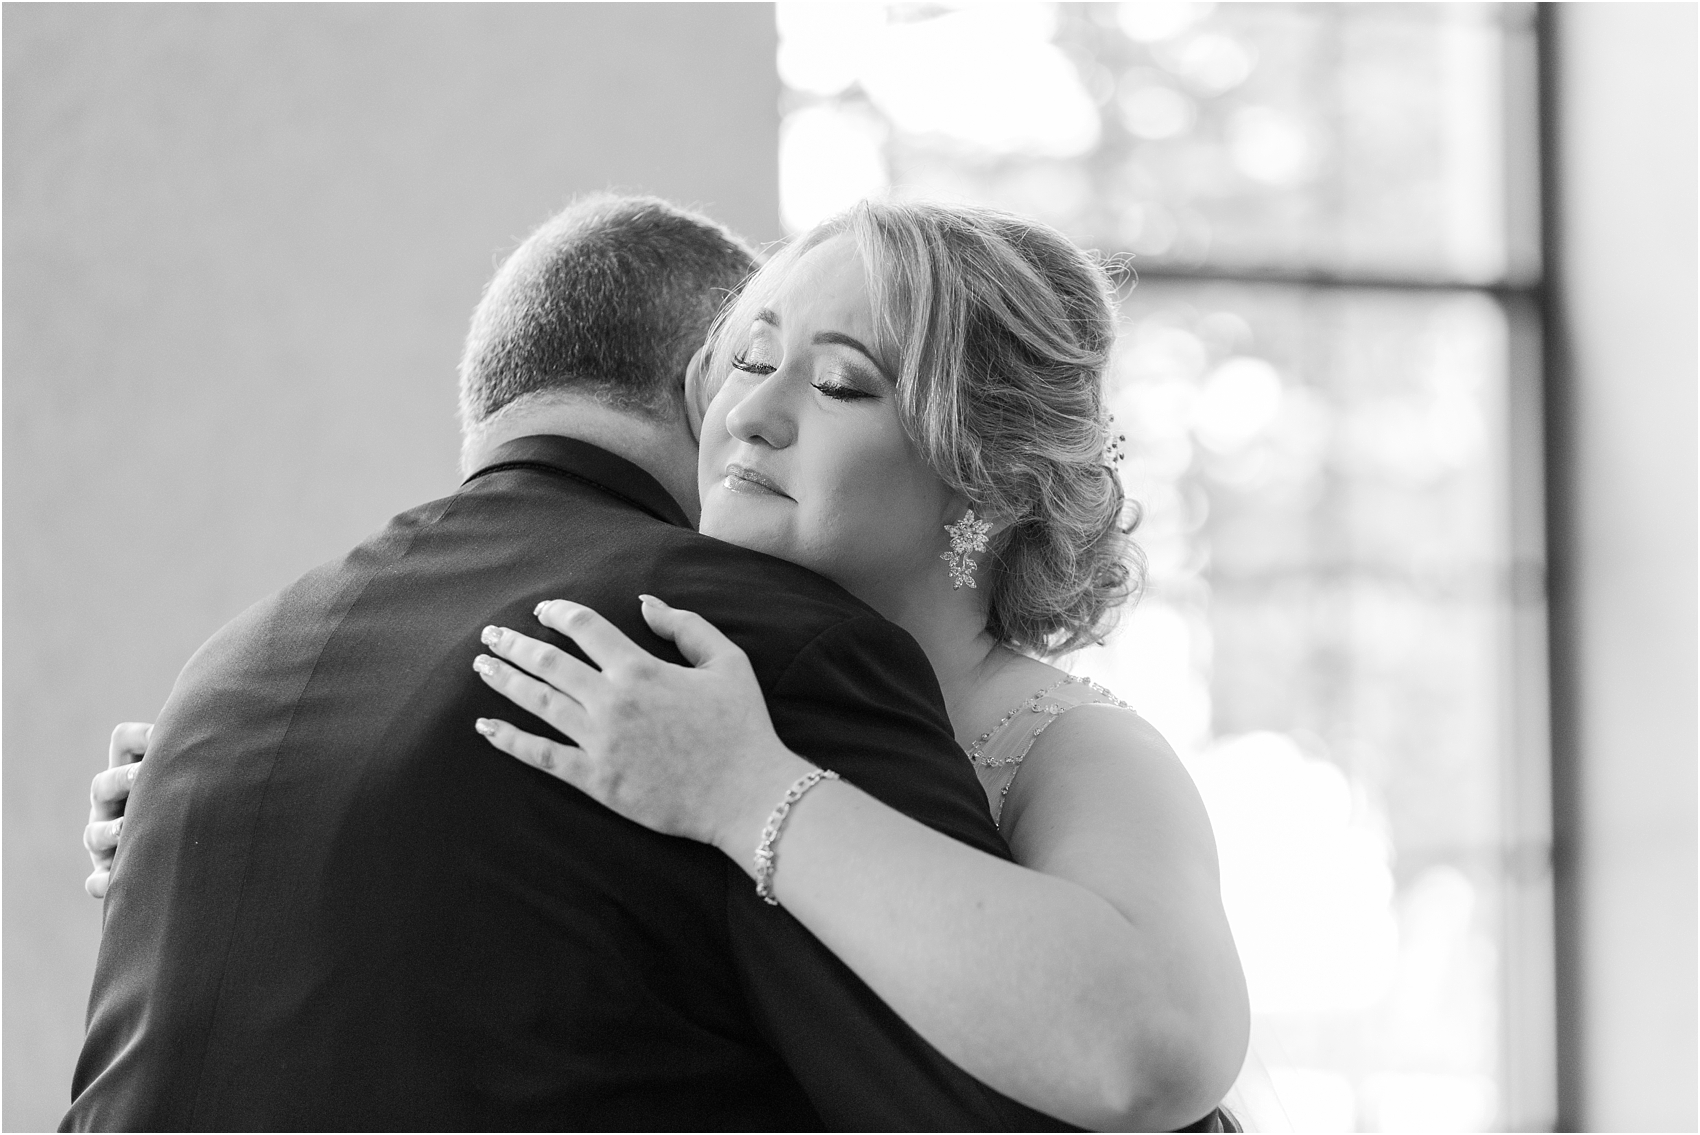 lord-of-the-rings-inspired-wedding-photos-at-crystal-gardens-in-howell-mi-by-courtney-carolyn-photography_0022.jpg